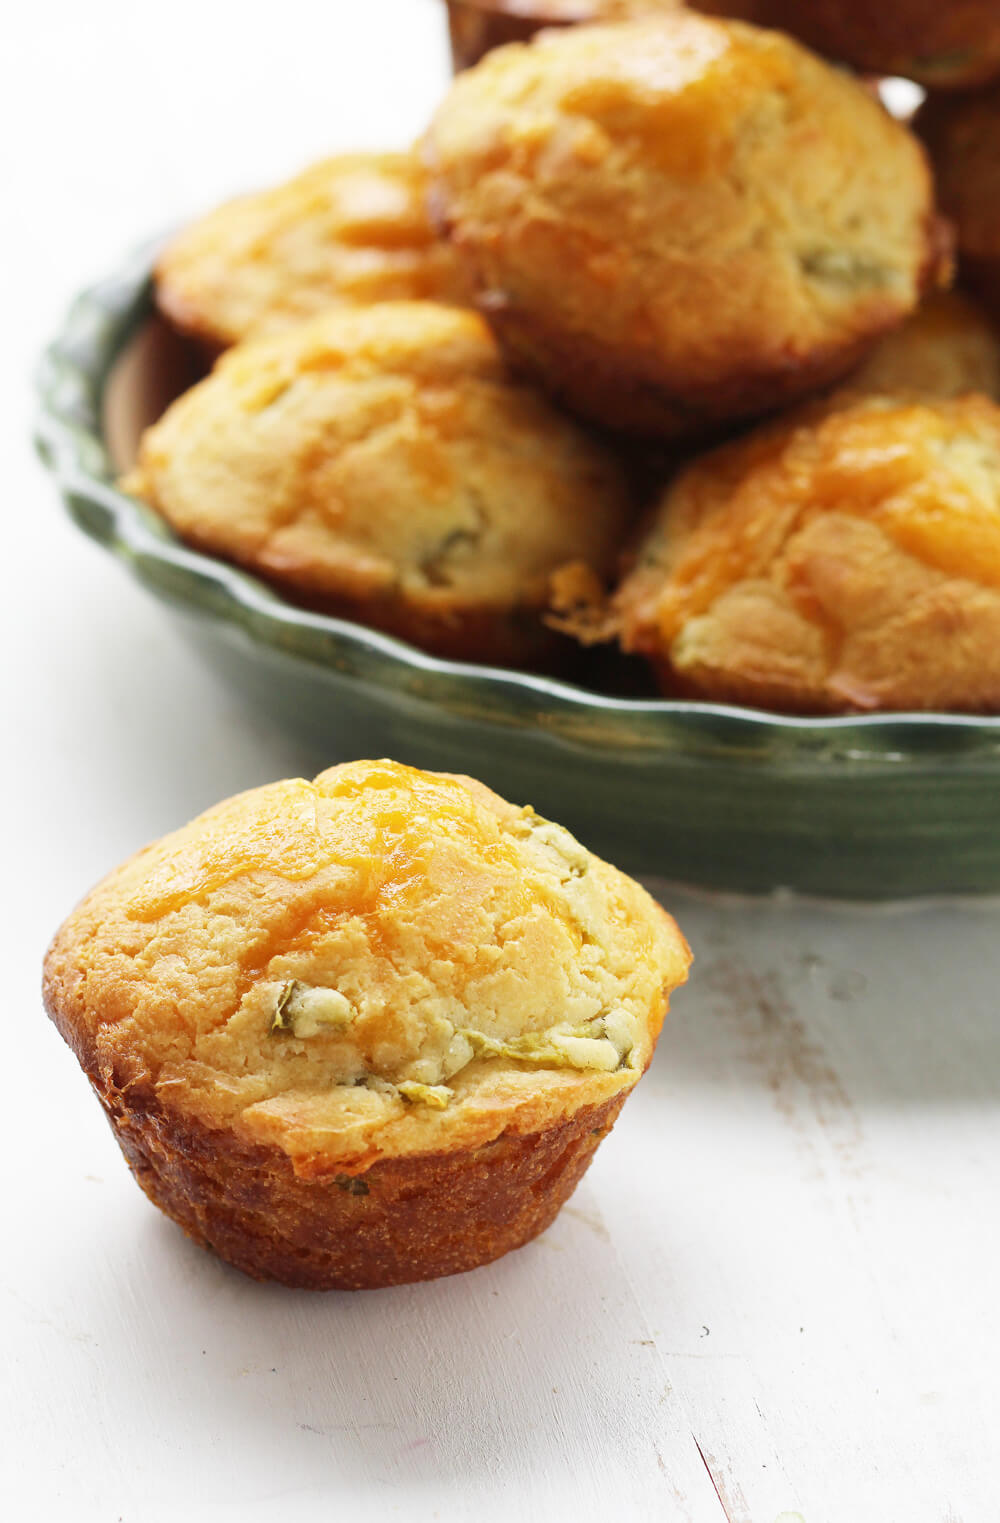 A close up picture of a cornbread muffin with a platter of more muffins in the background